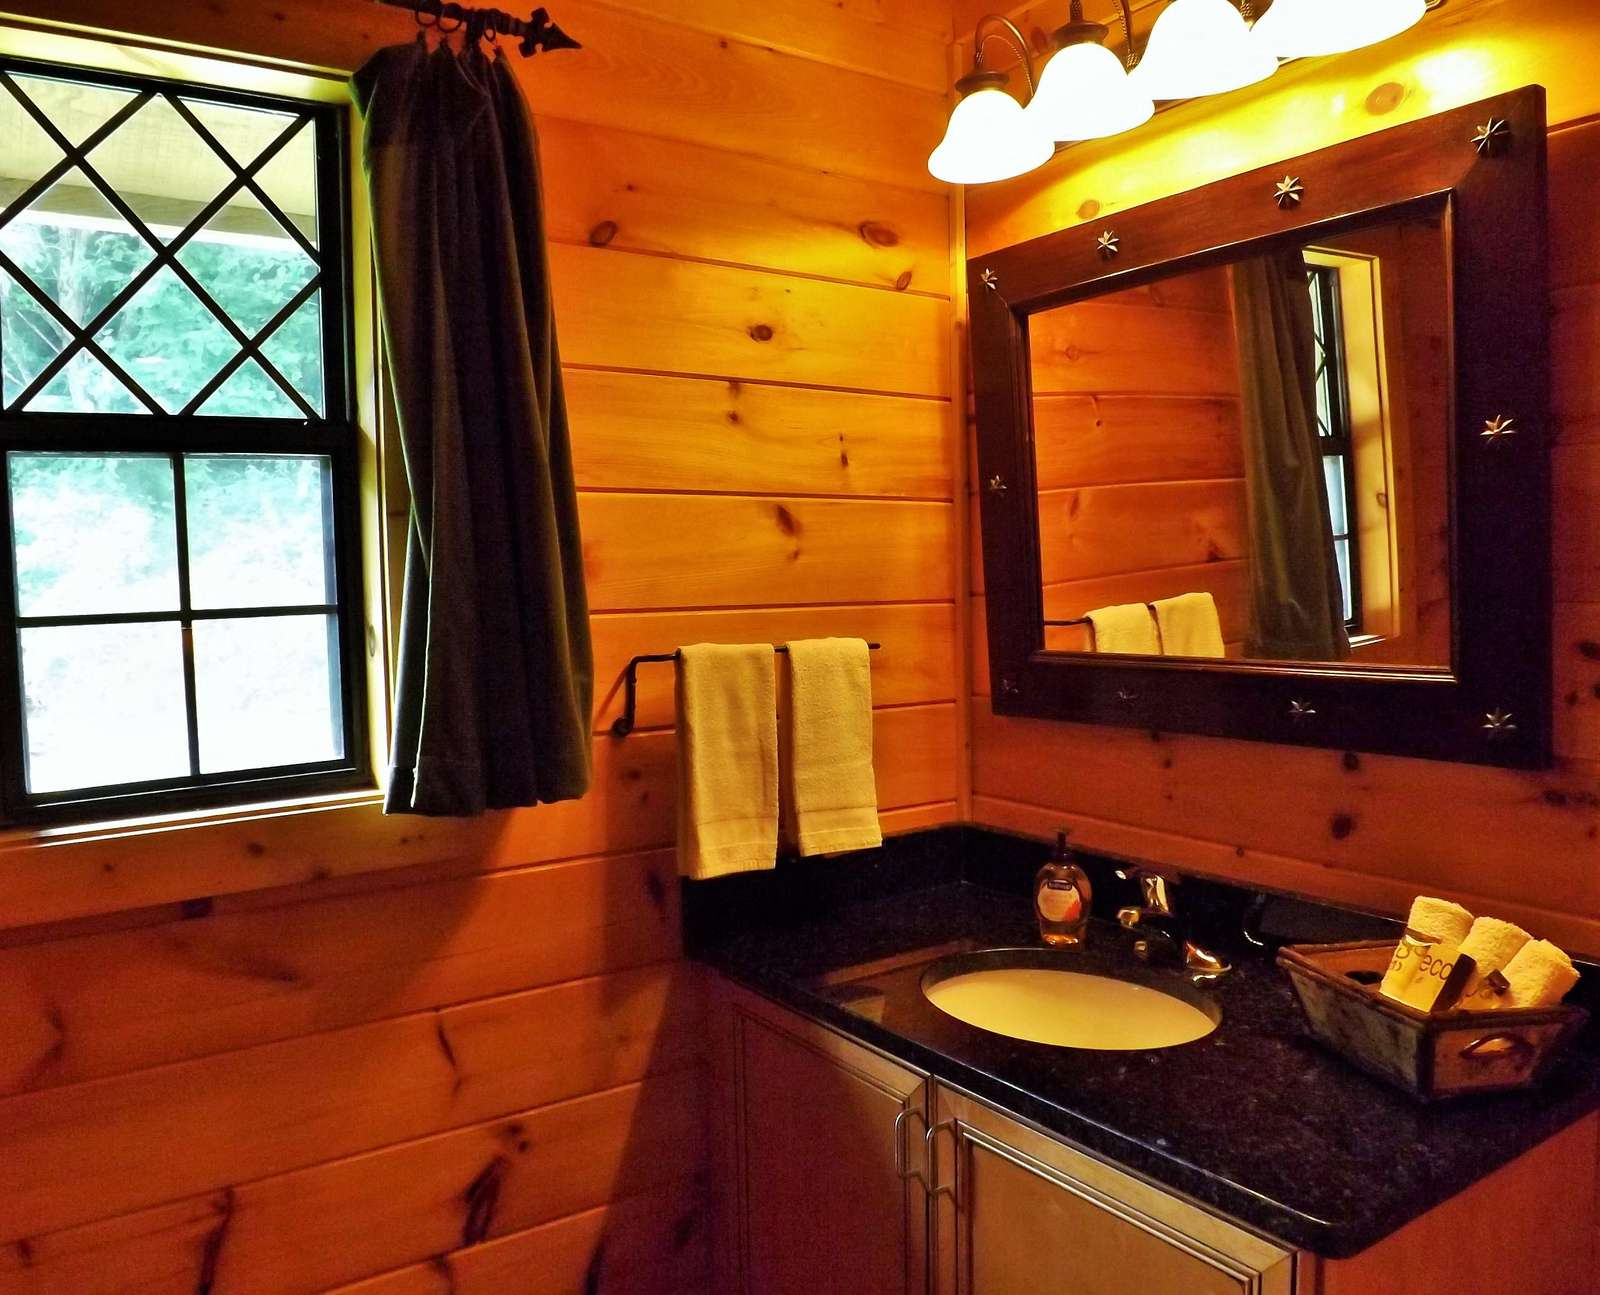 Full Bathroom is Spacious and offers a tiled shower